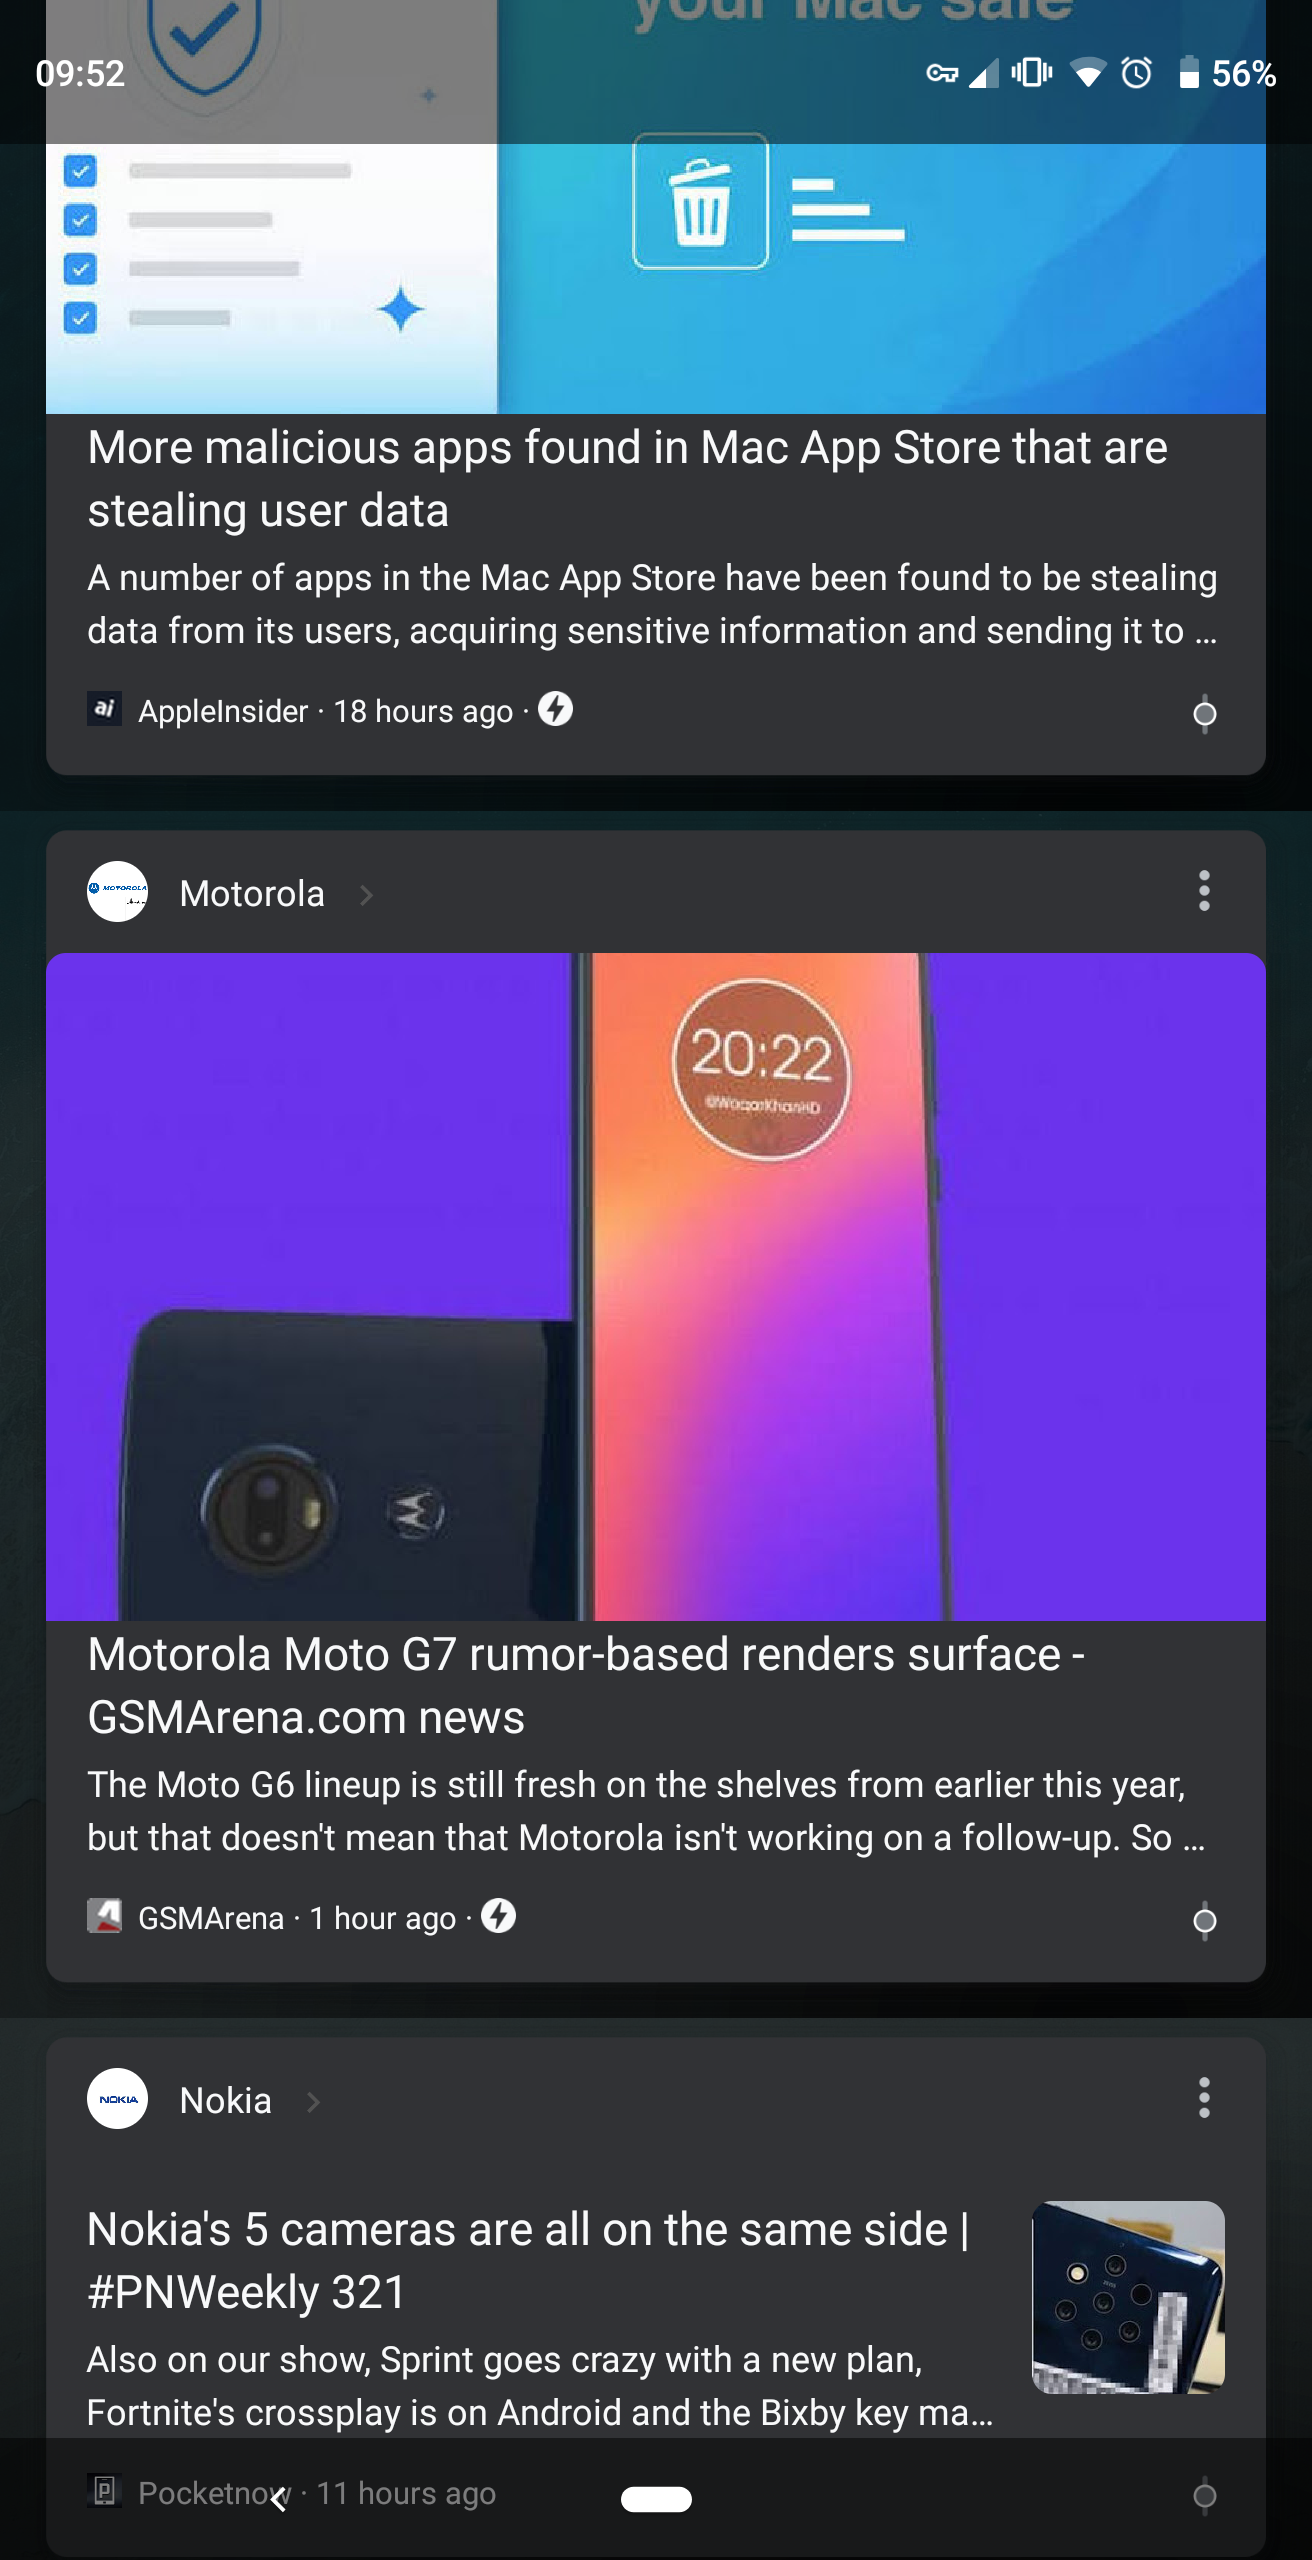 google testing a dark theme for the google feed including on non